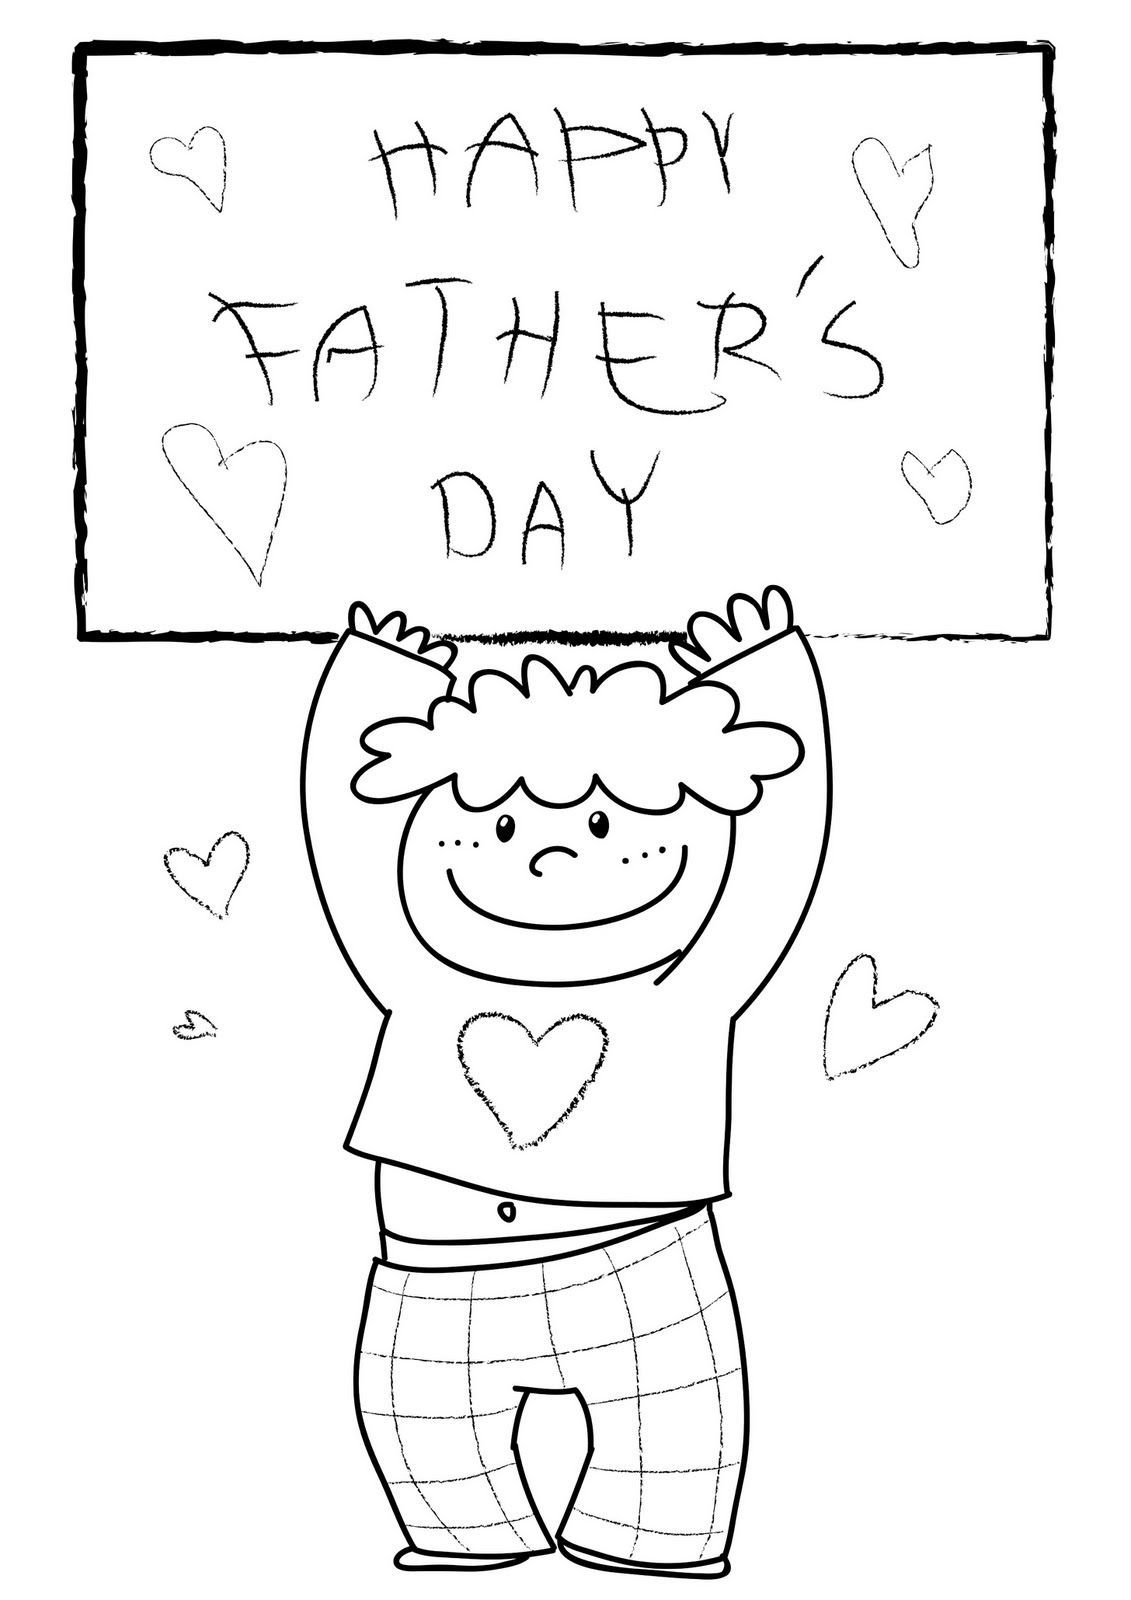 Happy mothers day card coloring pages - Happy Fathers Day Coloring Pages Free Large Images